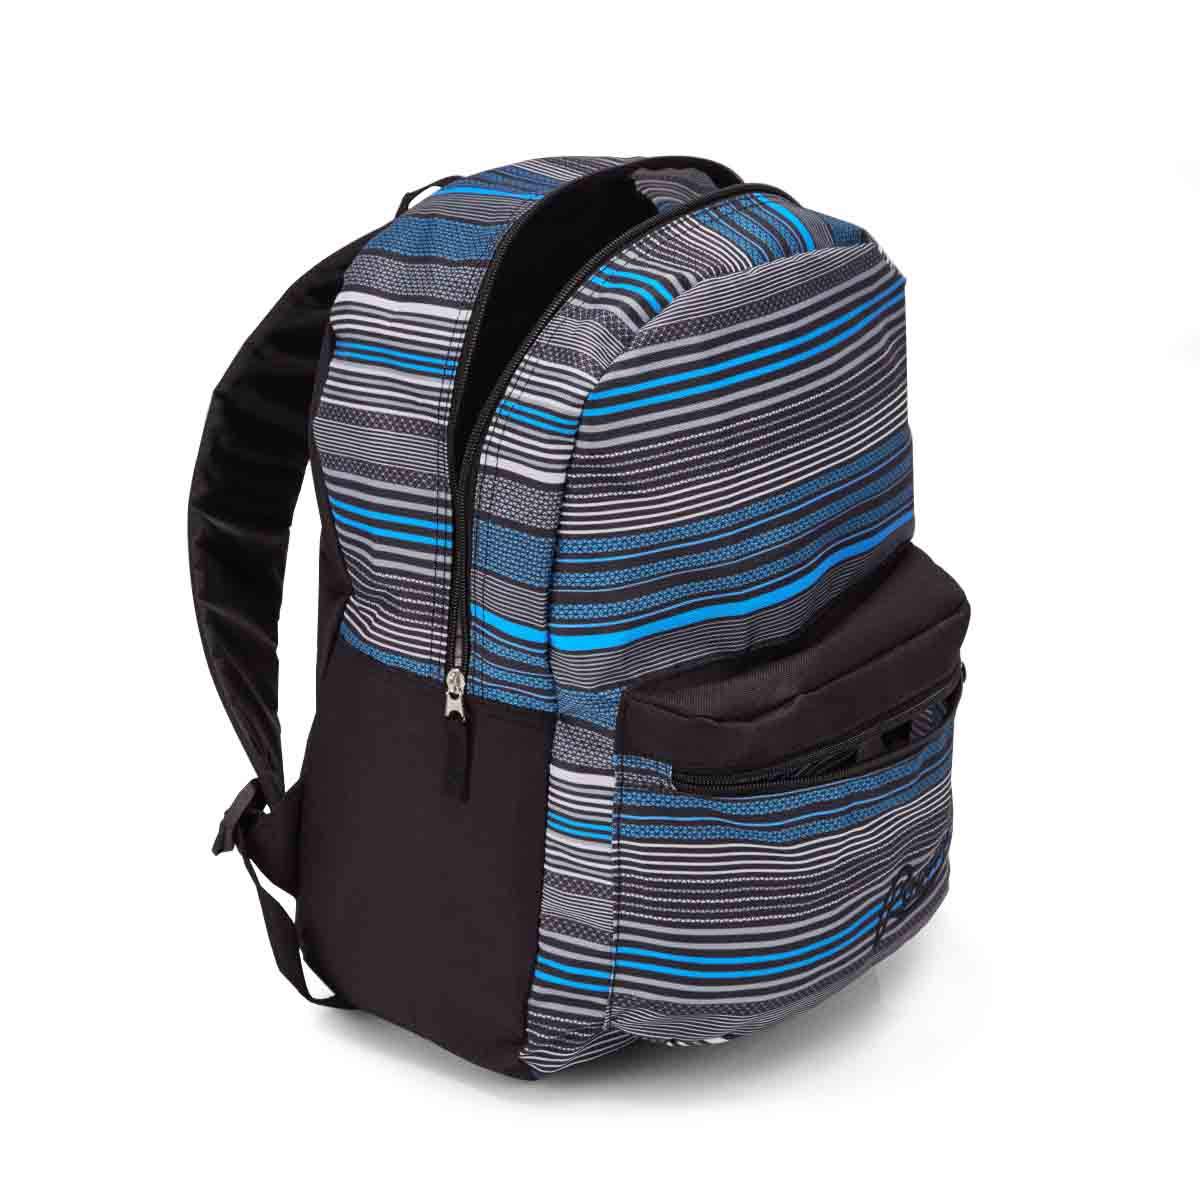 Roots73 blue stripes backpack